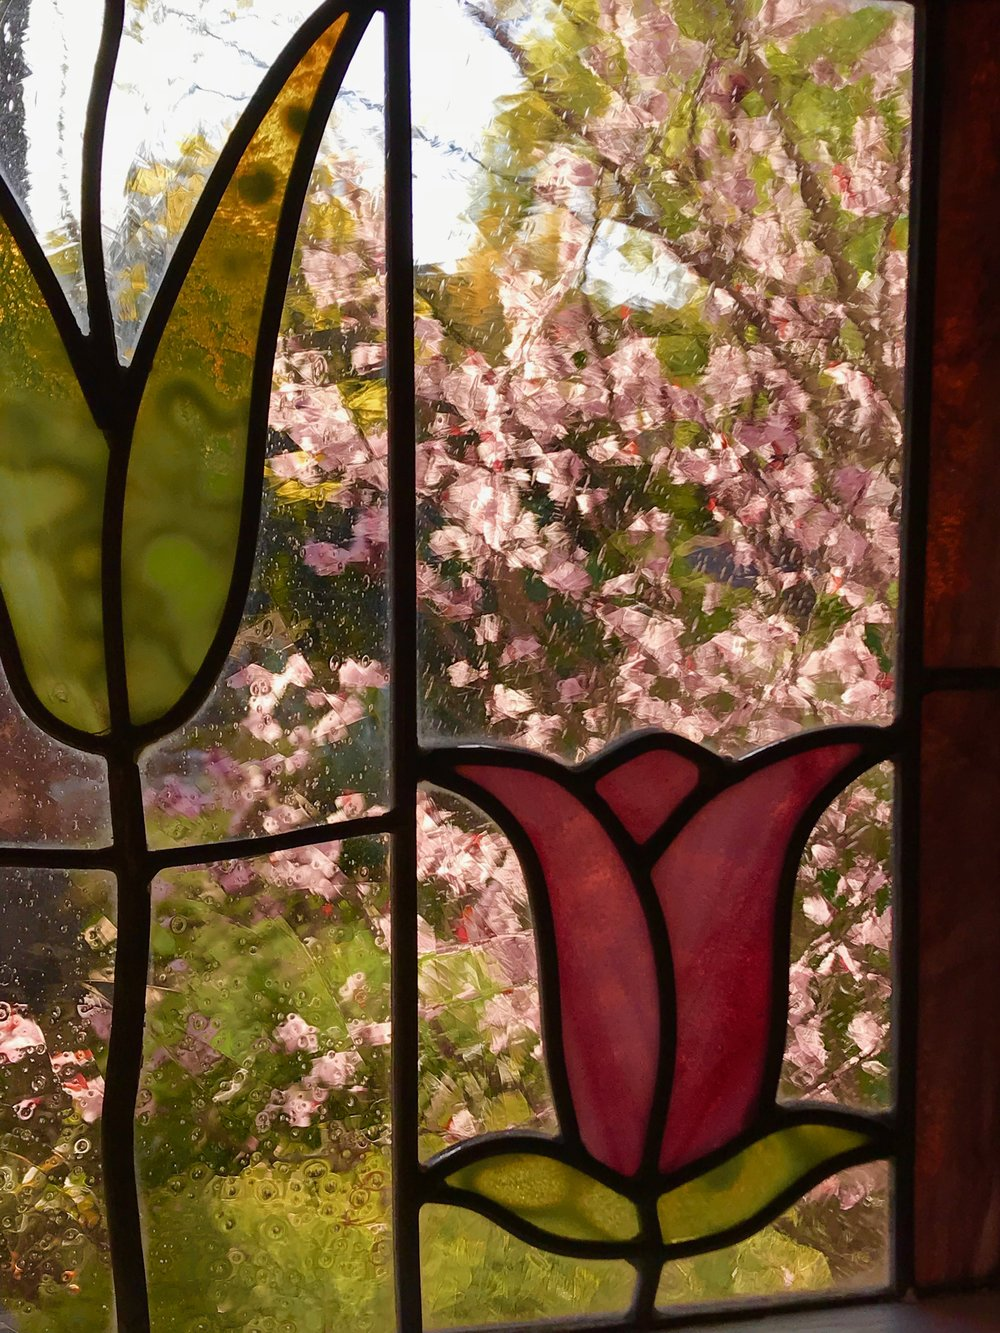 Cherry Blossom stain glass window.jpg*.jpg